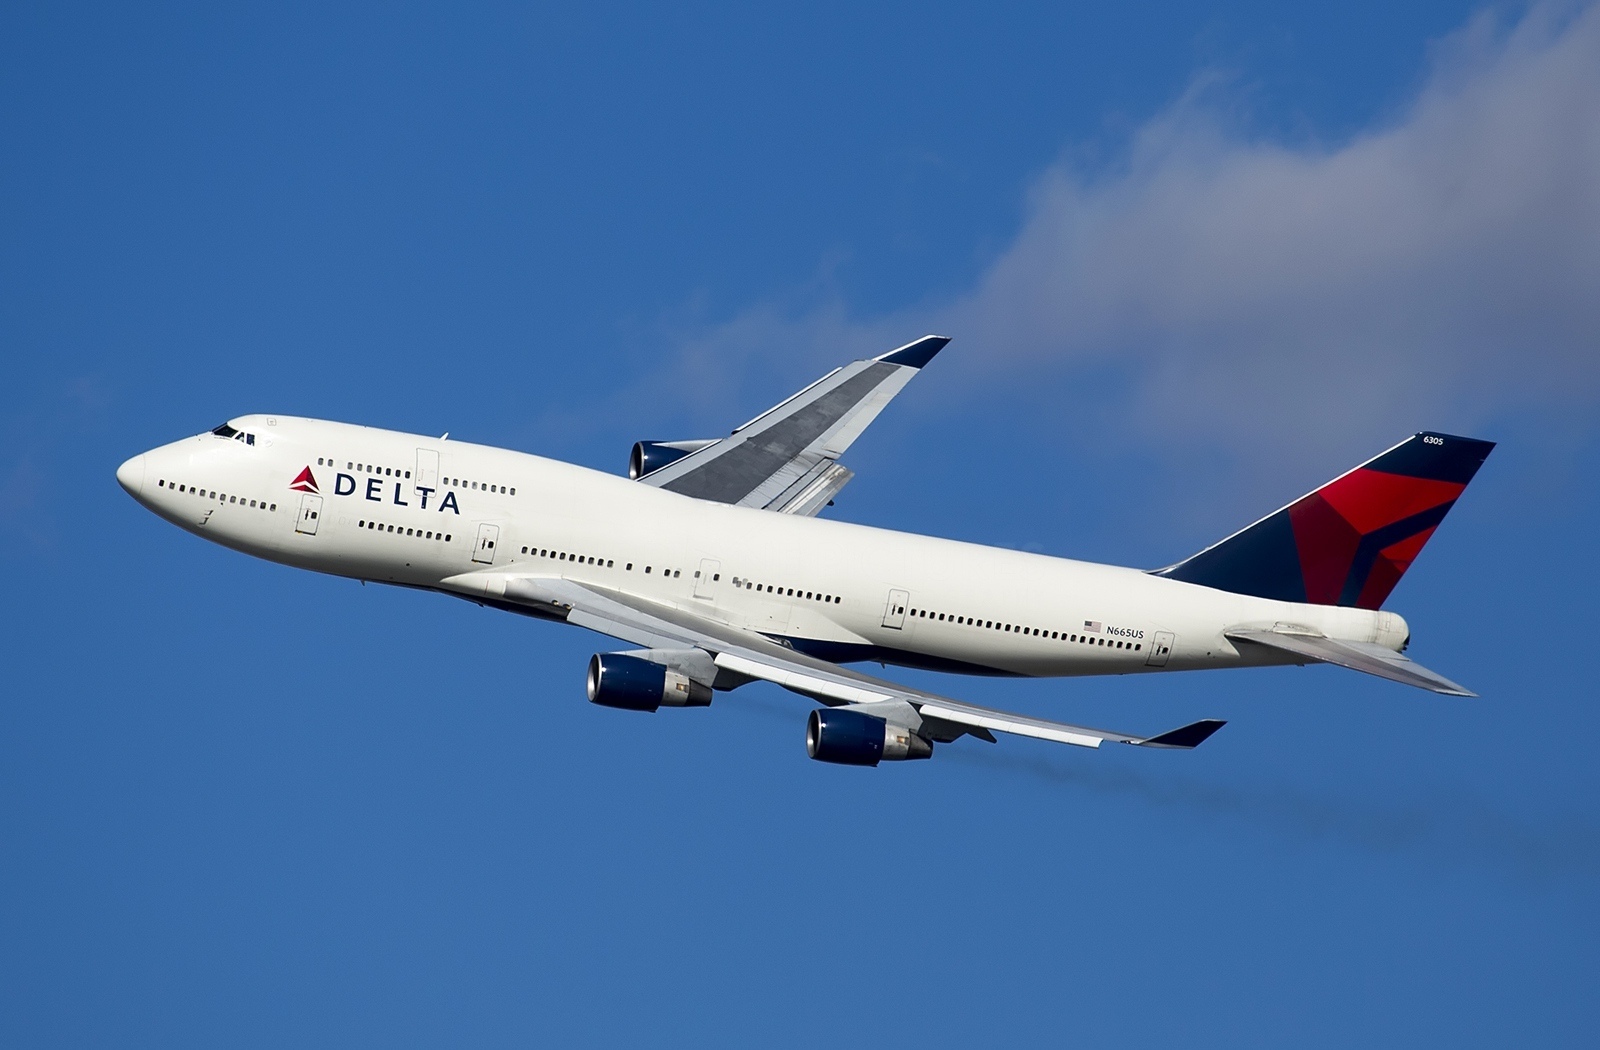 Delta Air Lines Wallpaper: Boeing 747-400 Of Delta Airlines Inflight Aircraft